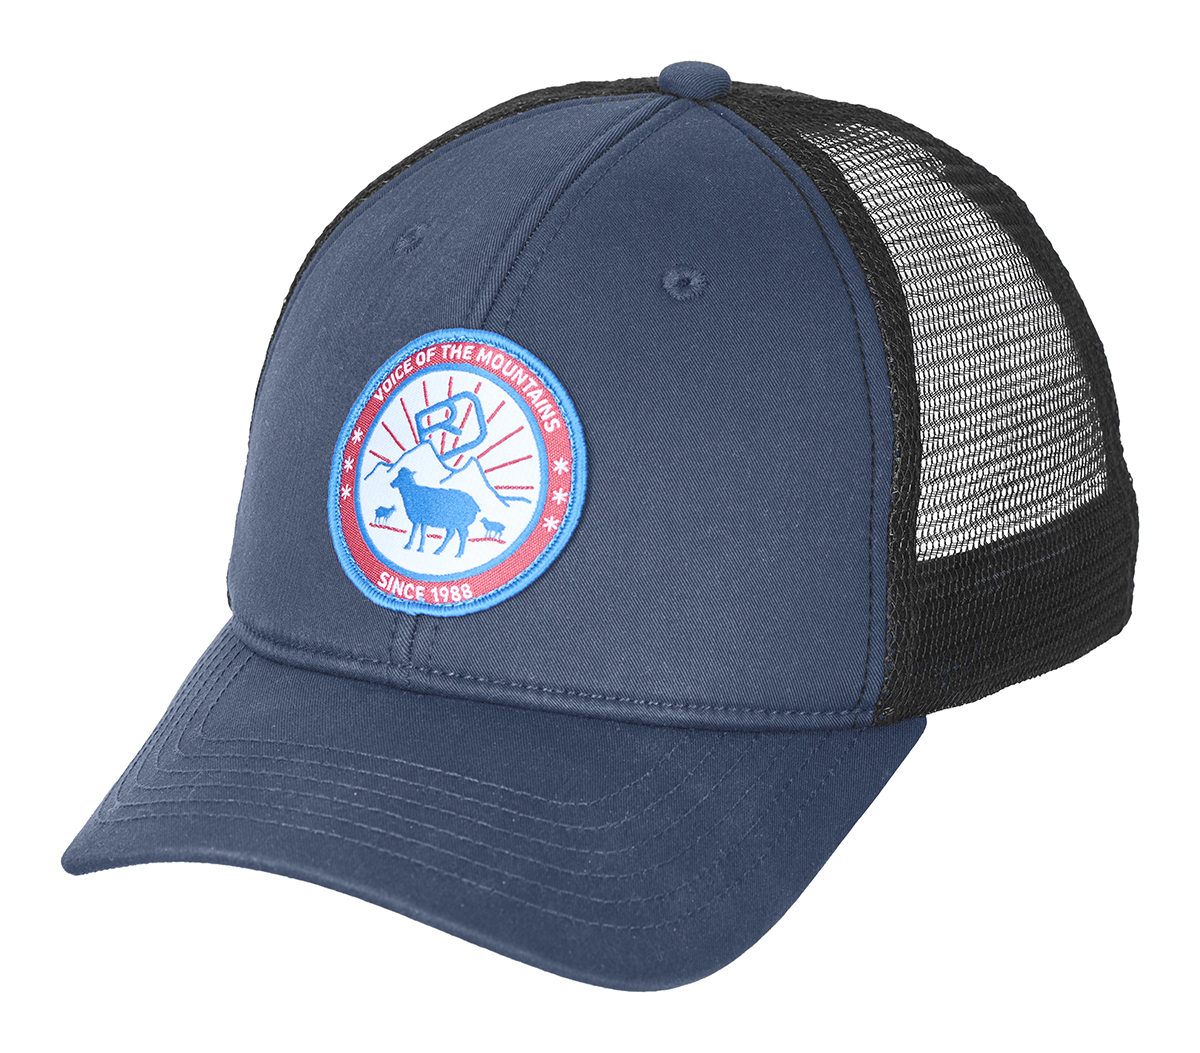 Kšiltovka Ortovox Stay In Sheep Trucker Cap  Night Blue